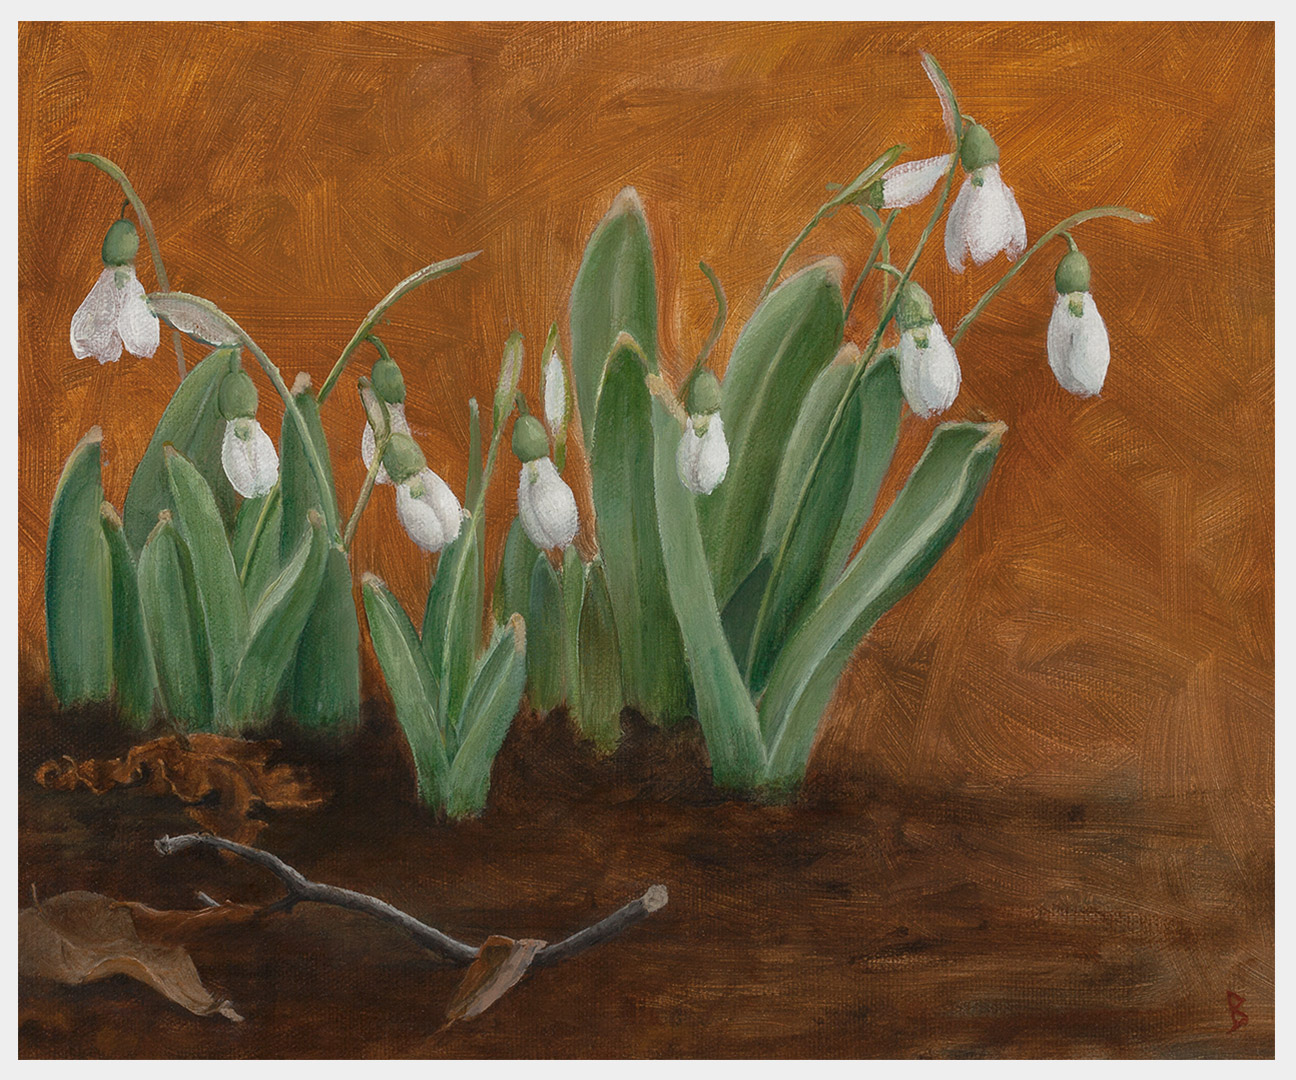 A realistic close-up landscape oil painting of snowdrops